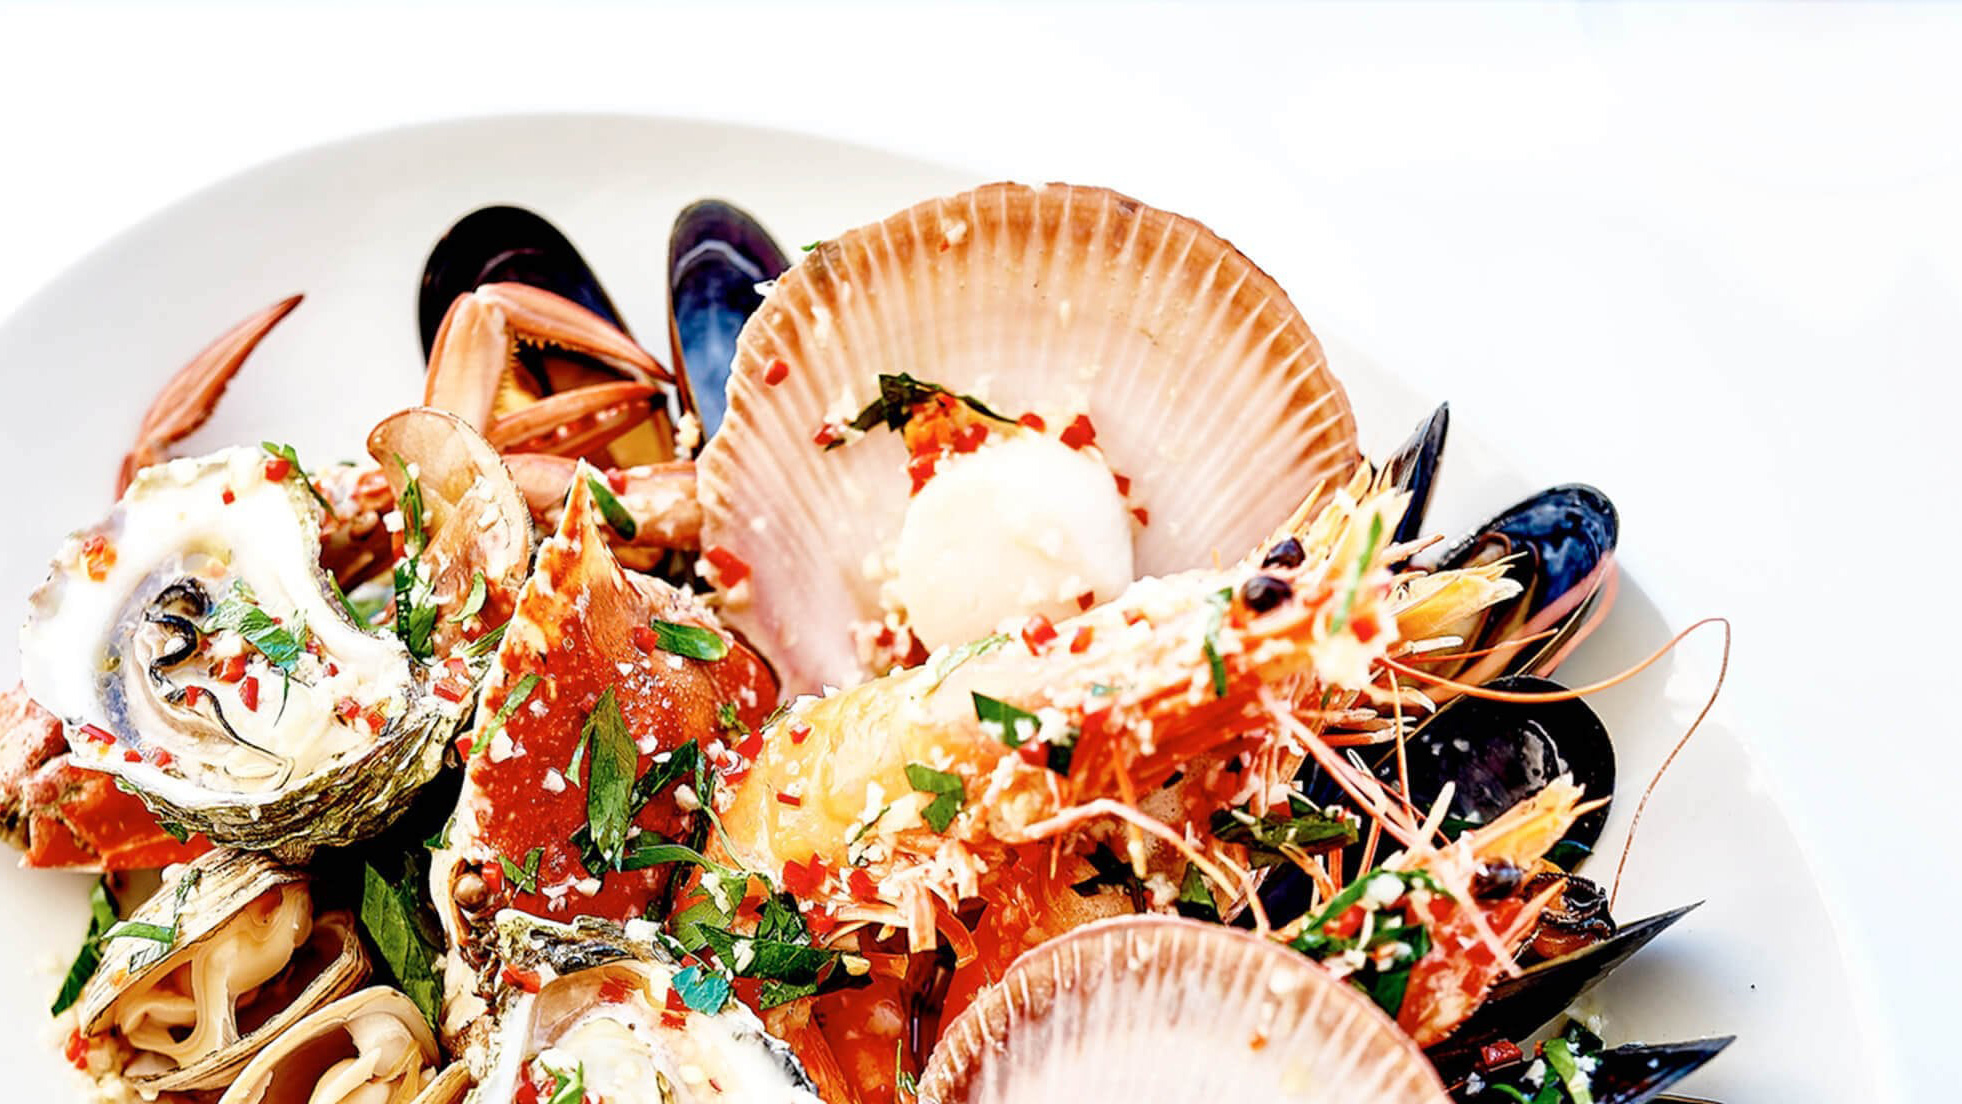 Famous TV chef Rick Stein's Mollymook Restaurant sets the standard for modern seafood in Australia.